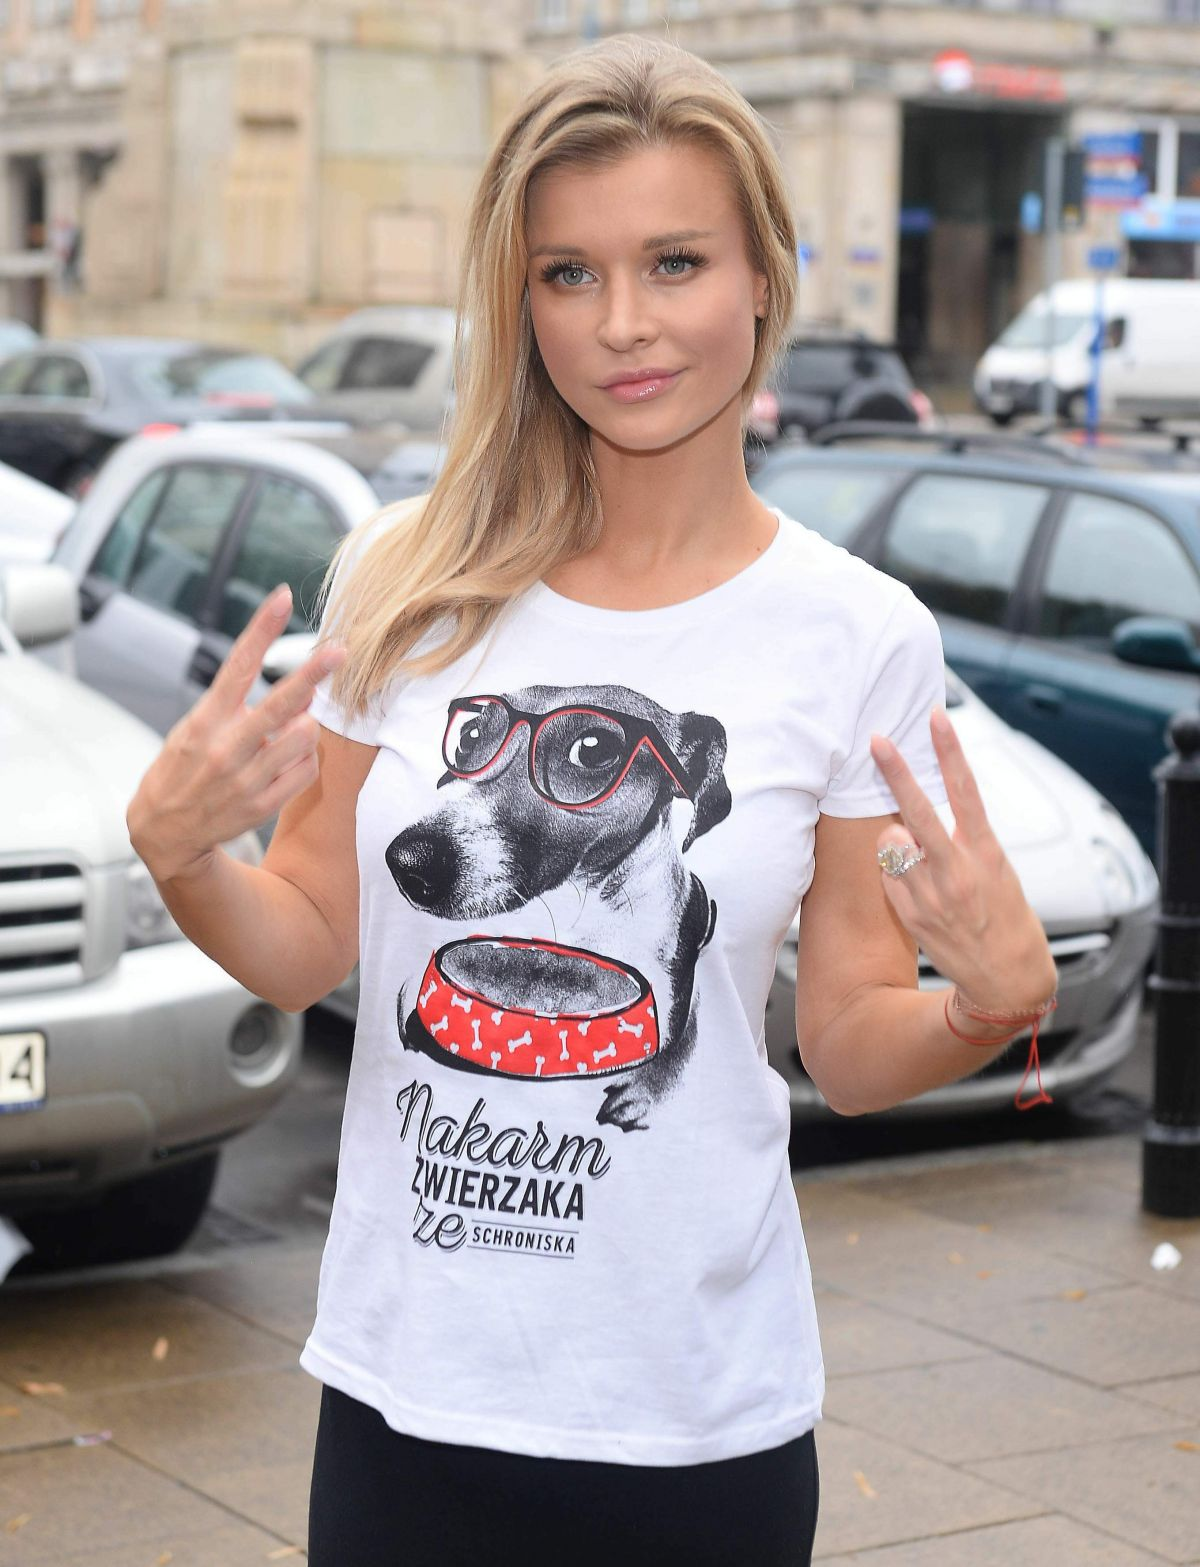 Joanna Krupa Poland Joanna Krupa Poland new photo